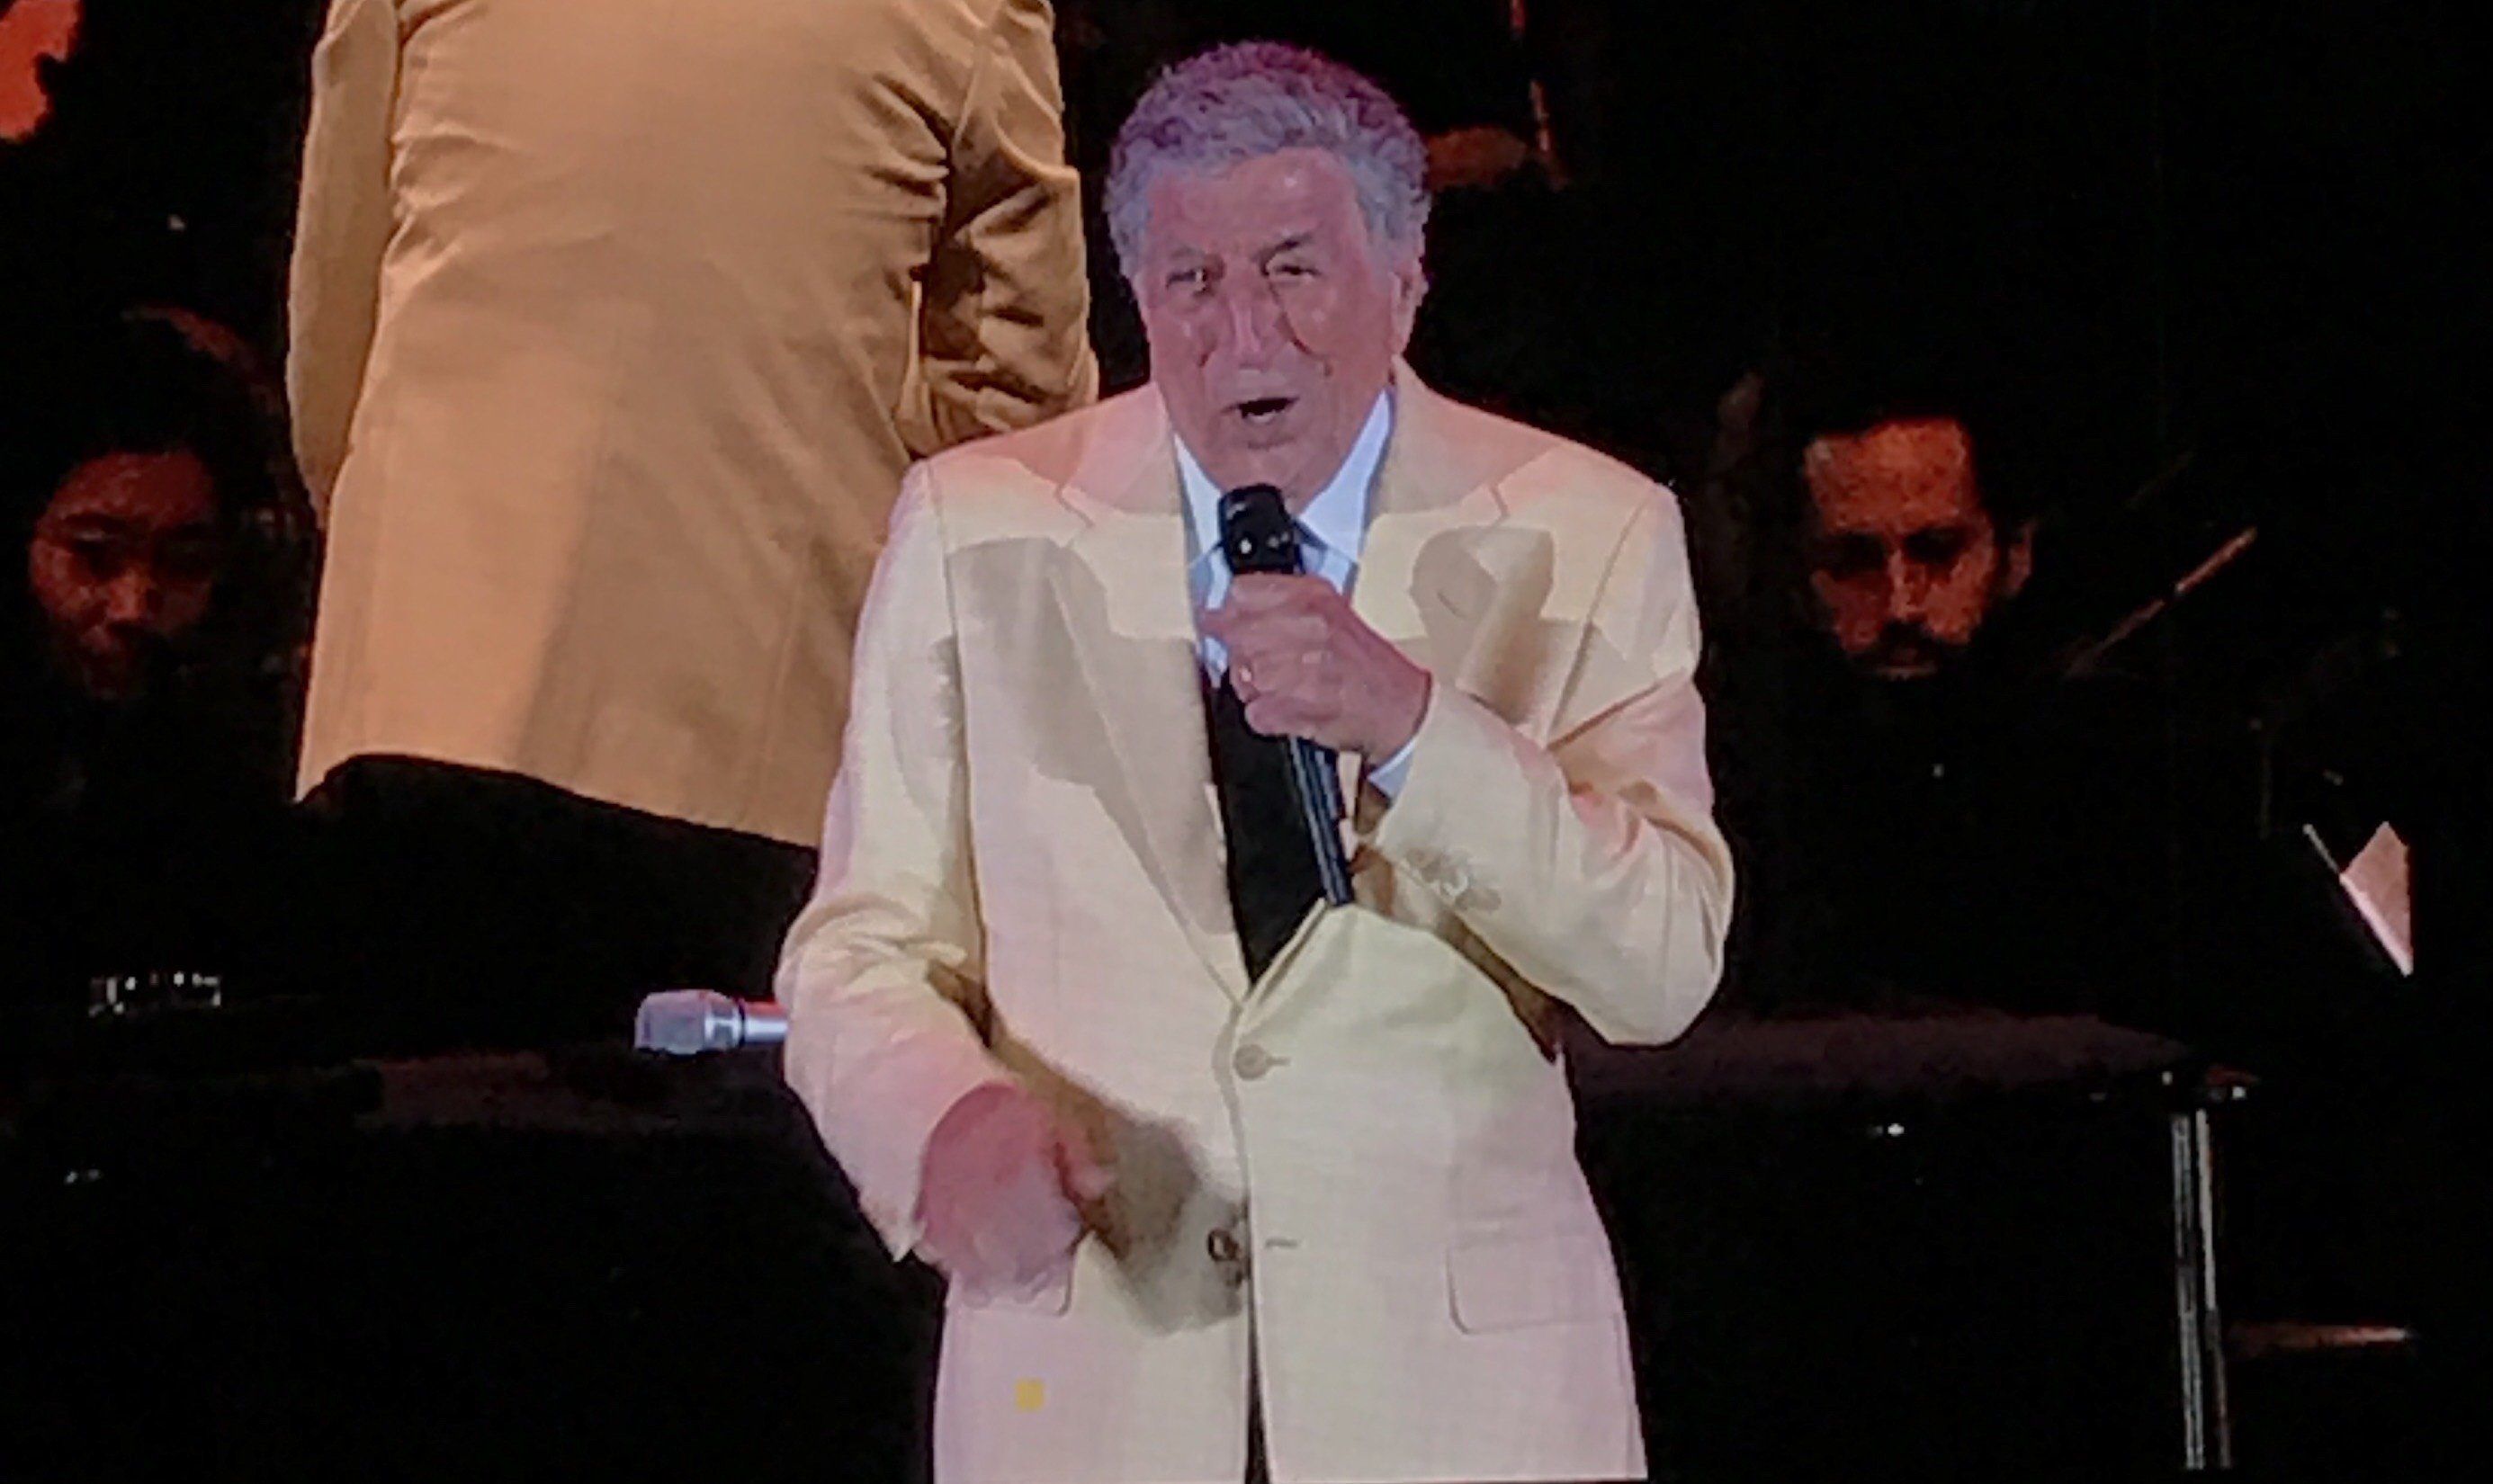 White Tie, Top Hat & Tony: Tony Bennett Live In Hollywood